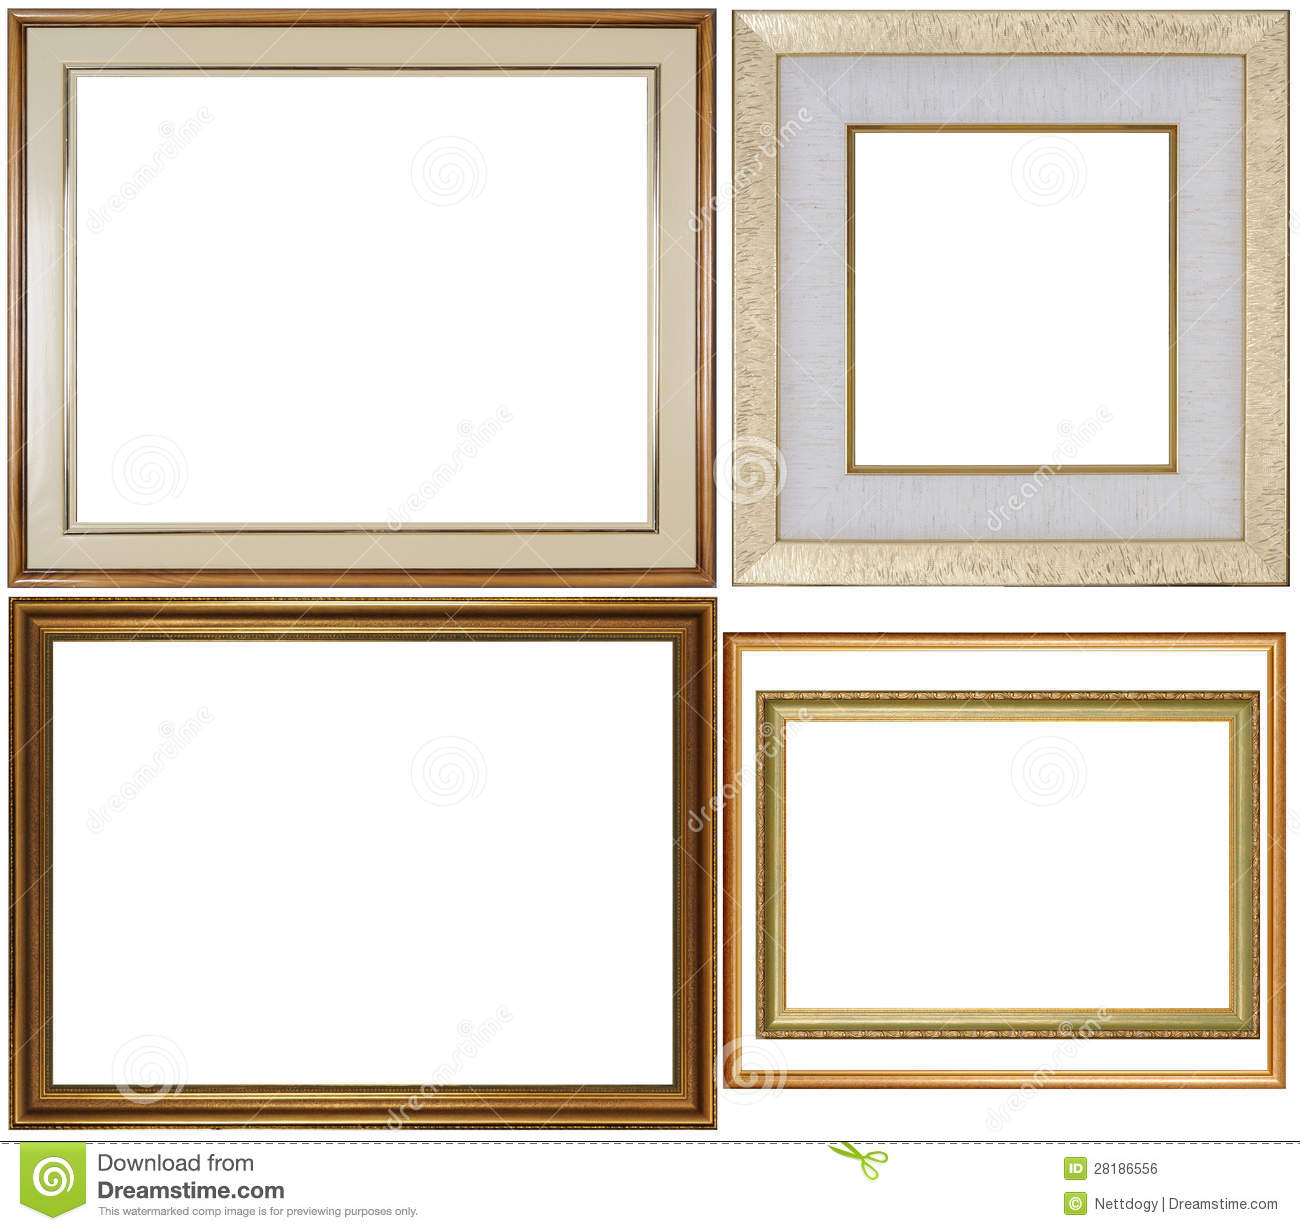 Five Frame stock photo. Image of wood, gilt, plated, picture - 28186556